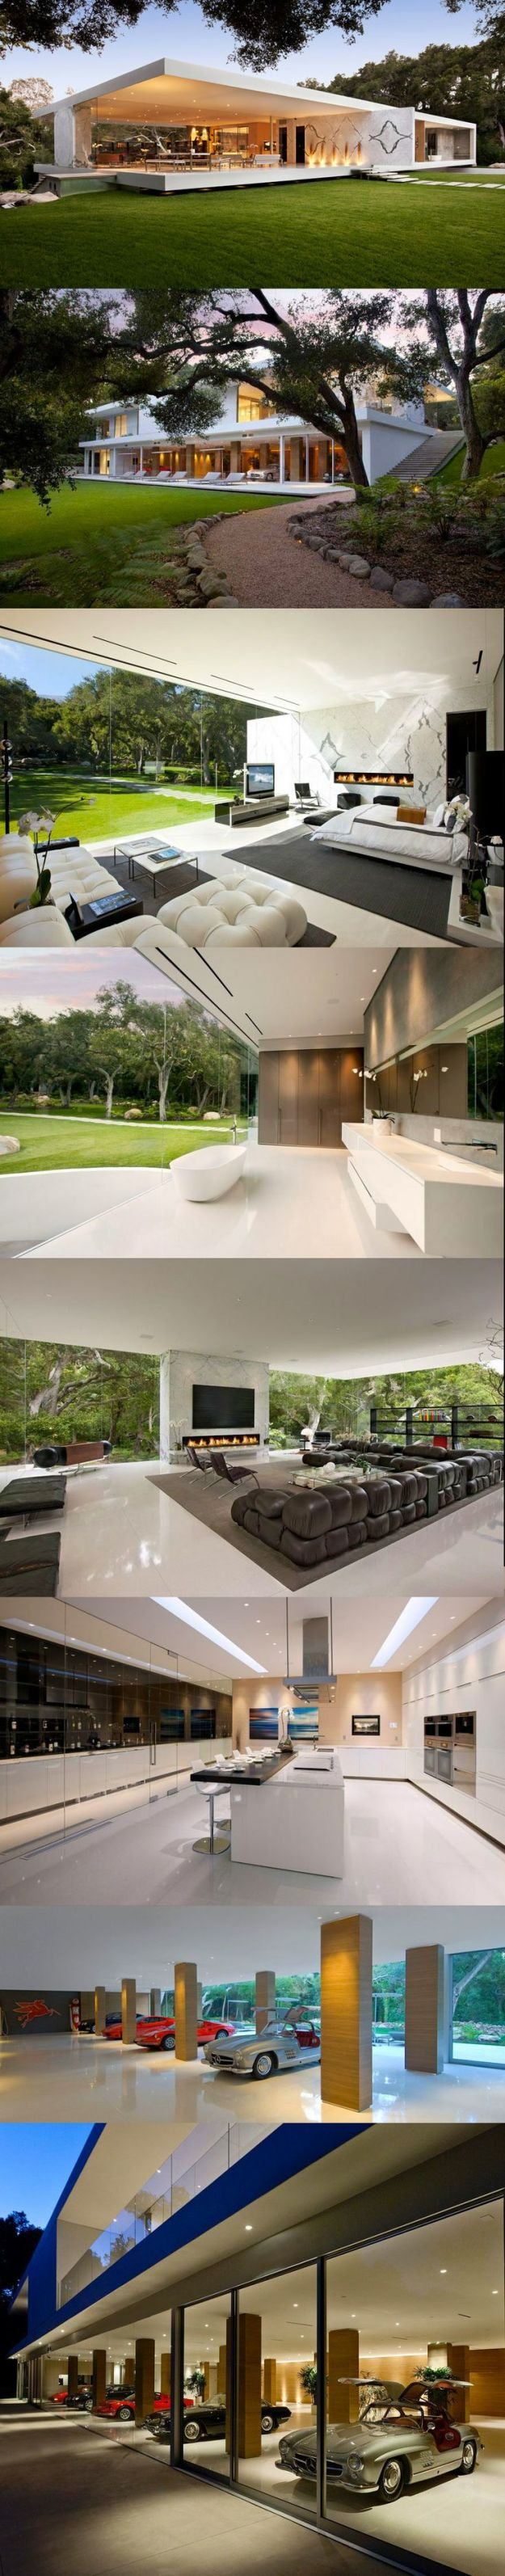 the-glass-pavilion-by-steve-hermann---gorgeous-how-the-loadbearing-walls-are-used-in-this-residential-house-allowing-the-house-to-be-co[1]